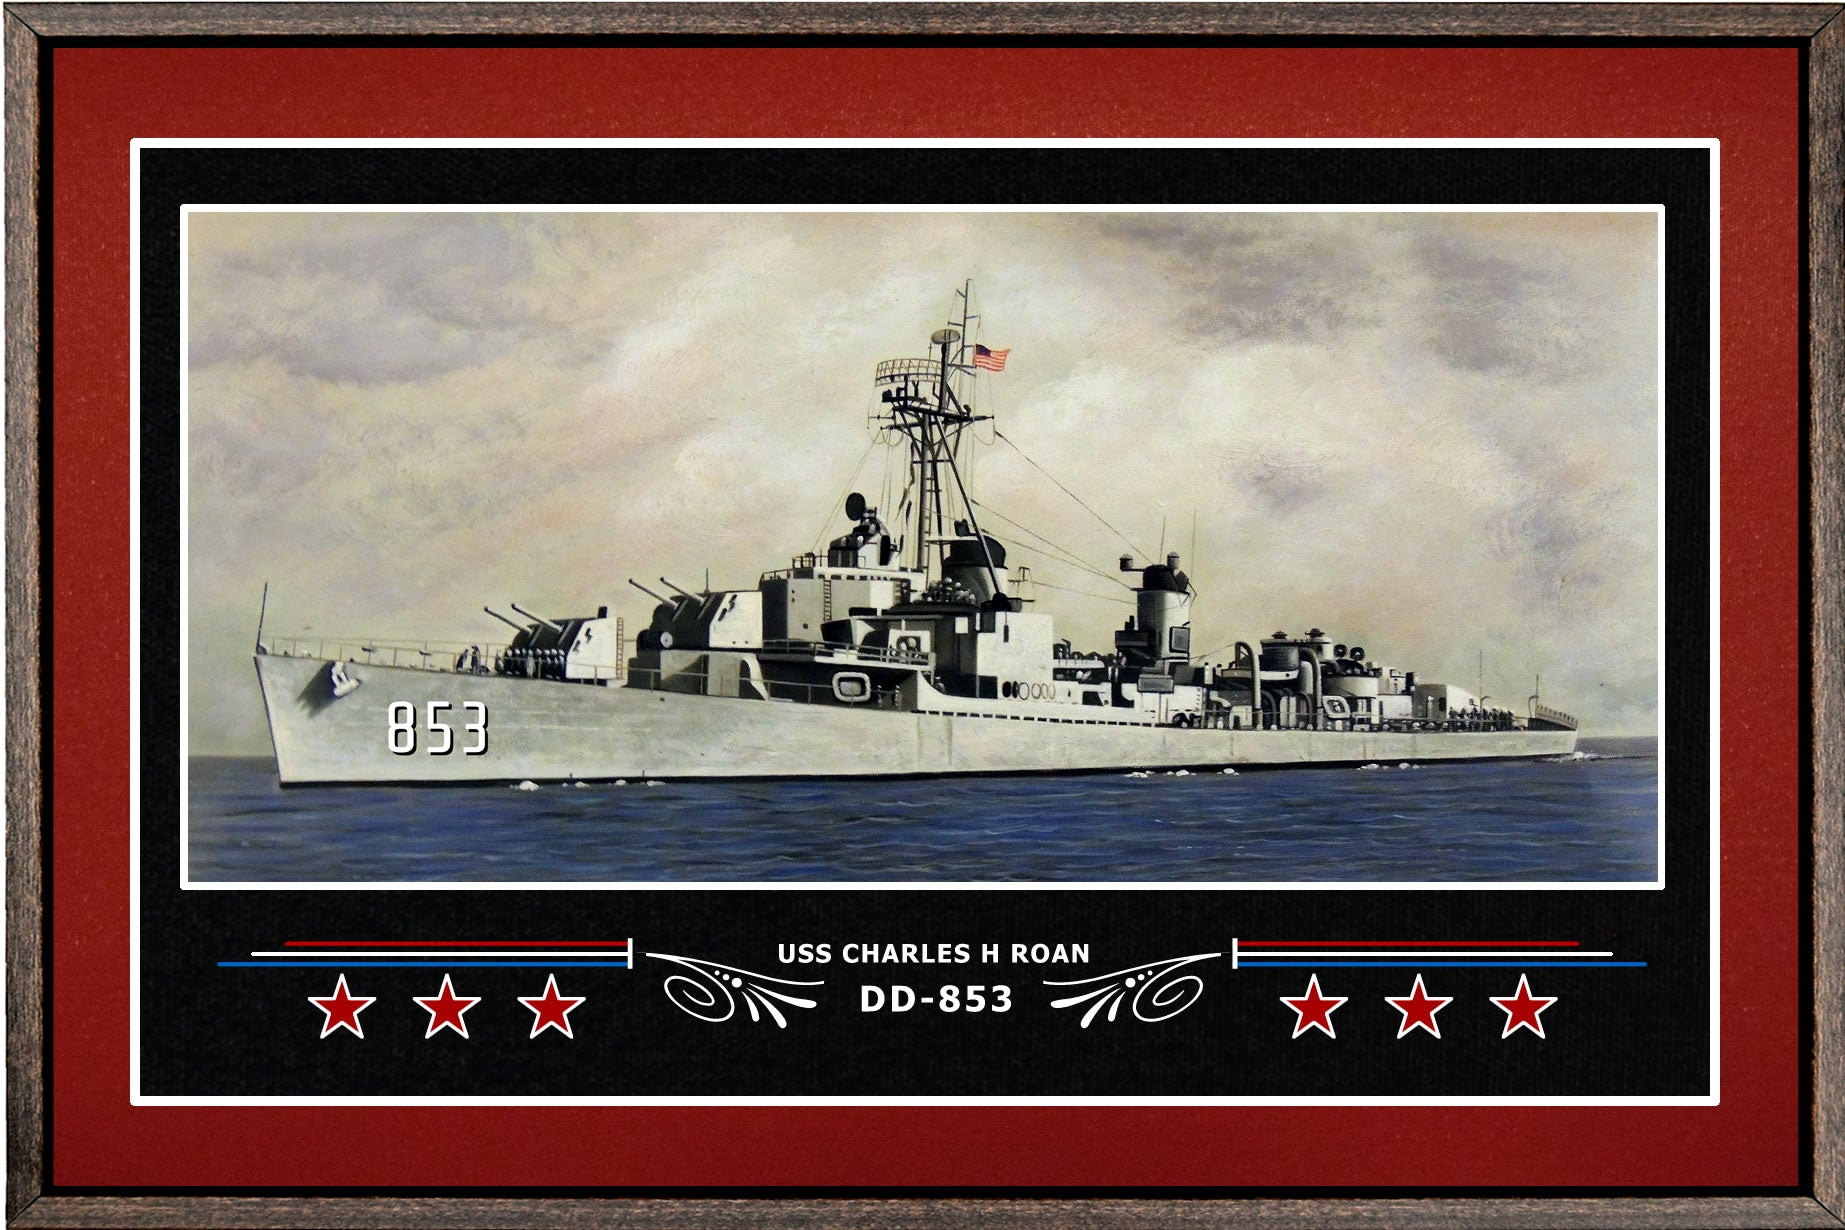 USS CHARLES H ROAN DD 853 BOX FRAMED CANVAS ART BURGUNDY